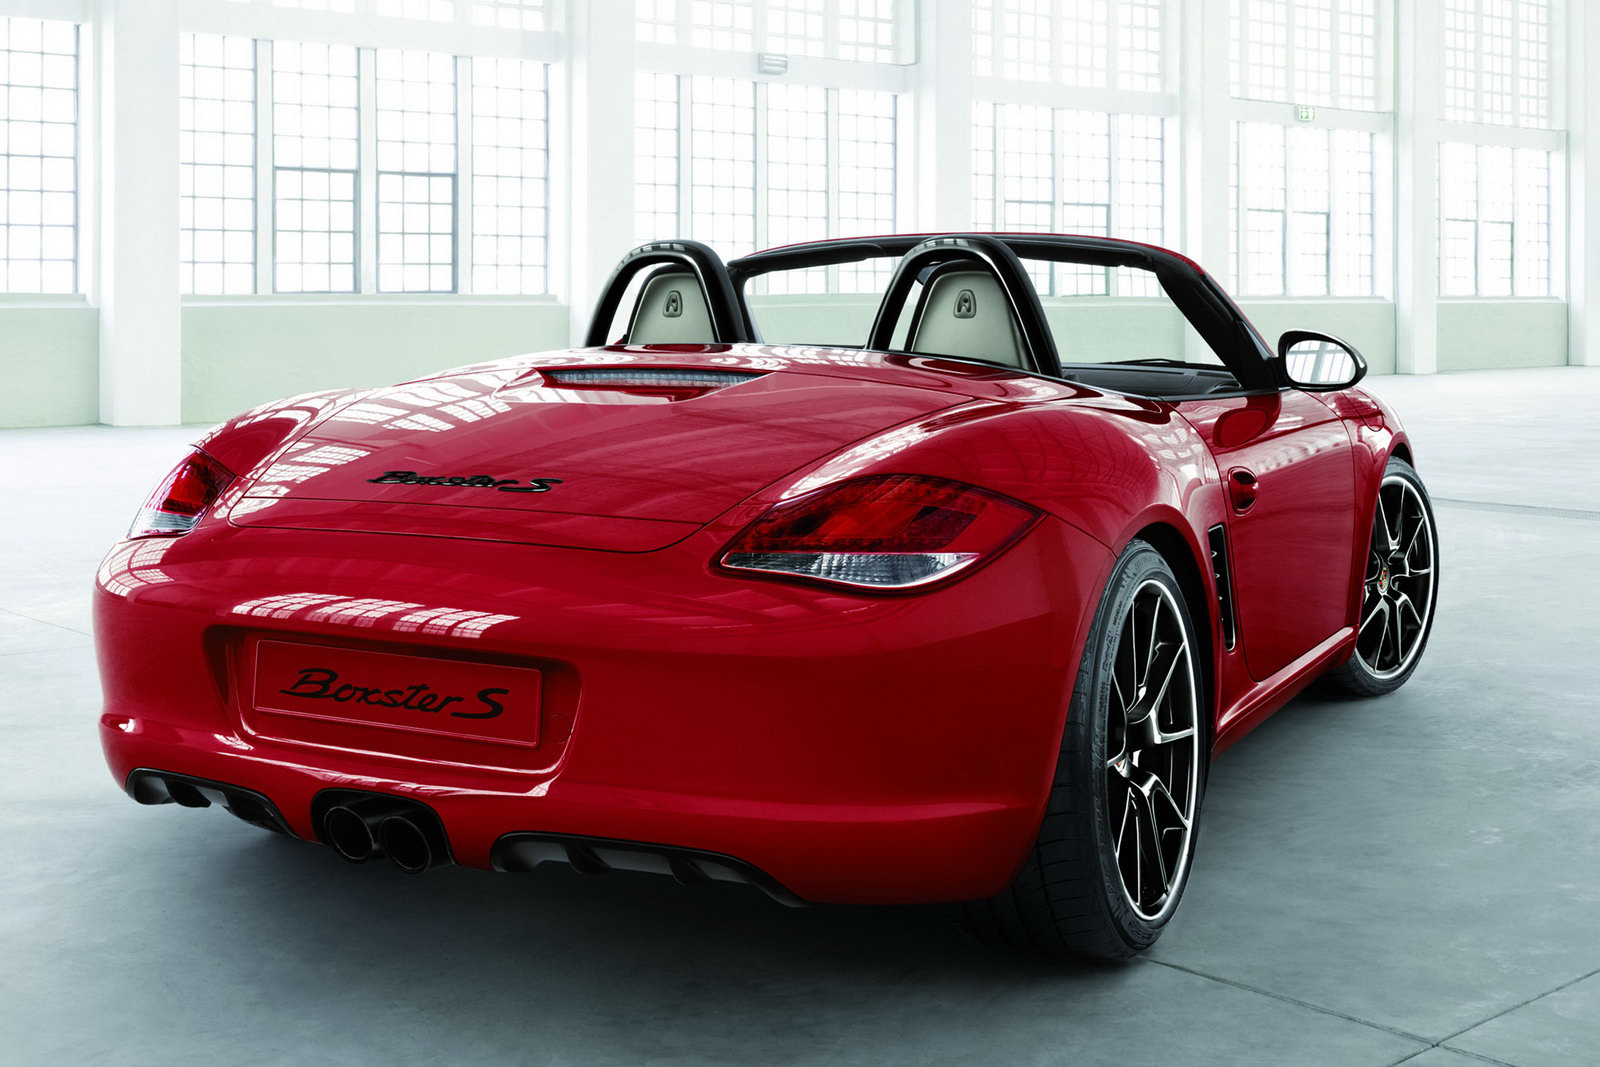 Porsche Introduces New Boxster And Cayman Personalization